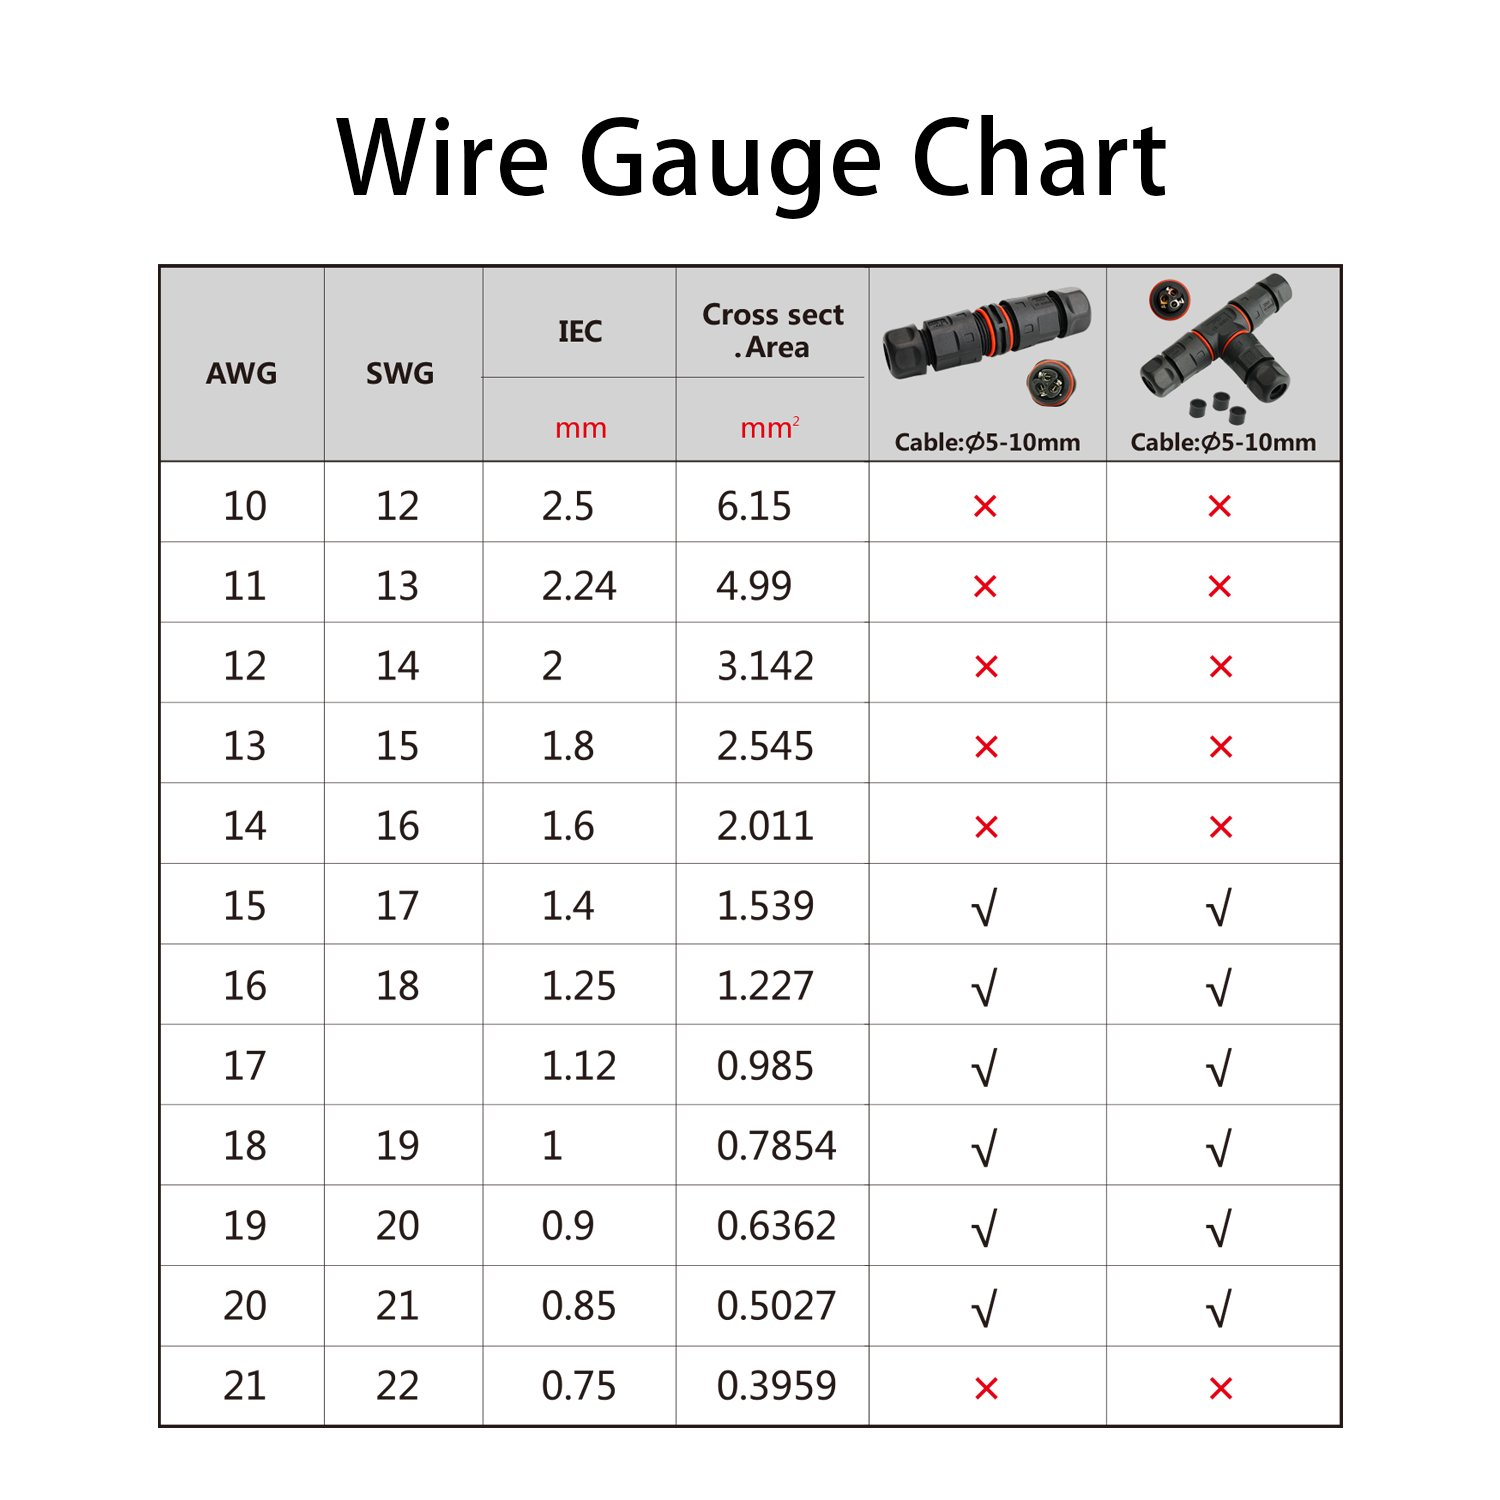 Awesome electrical cable size chart amps images electrical great electrical cable size chart amps ideas electrical circuit keyboard keysfo Image collections